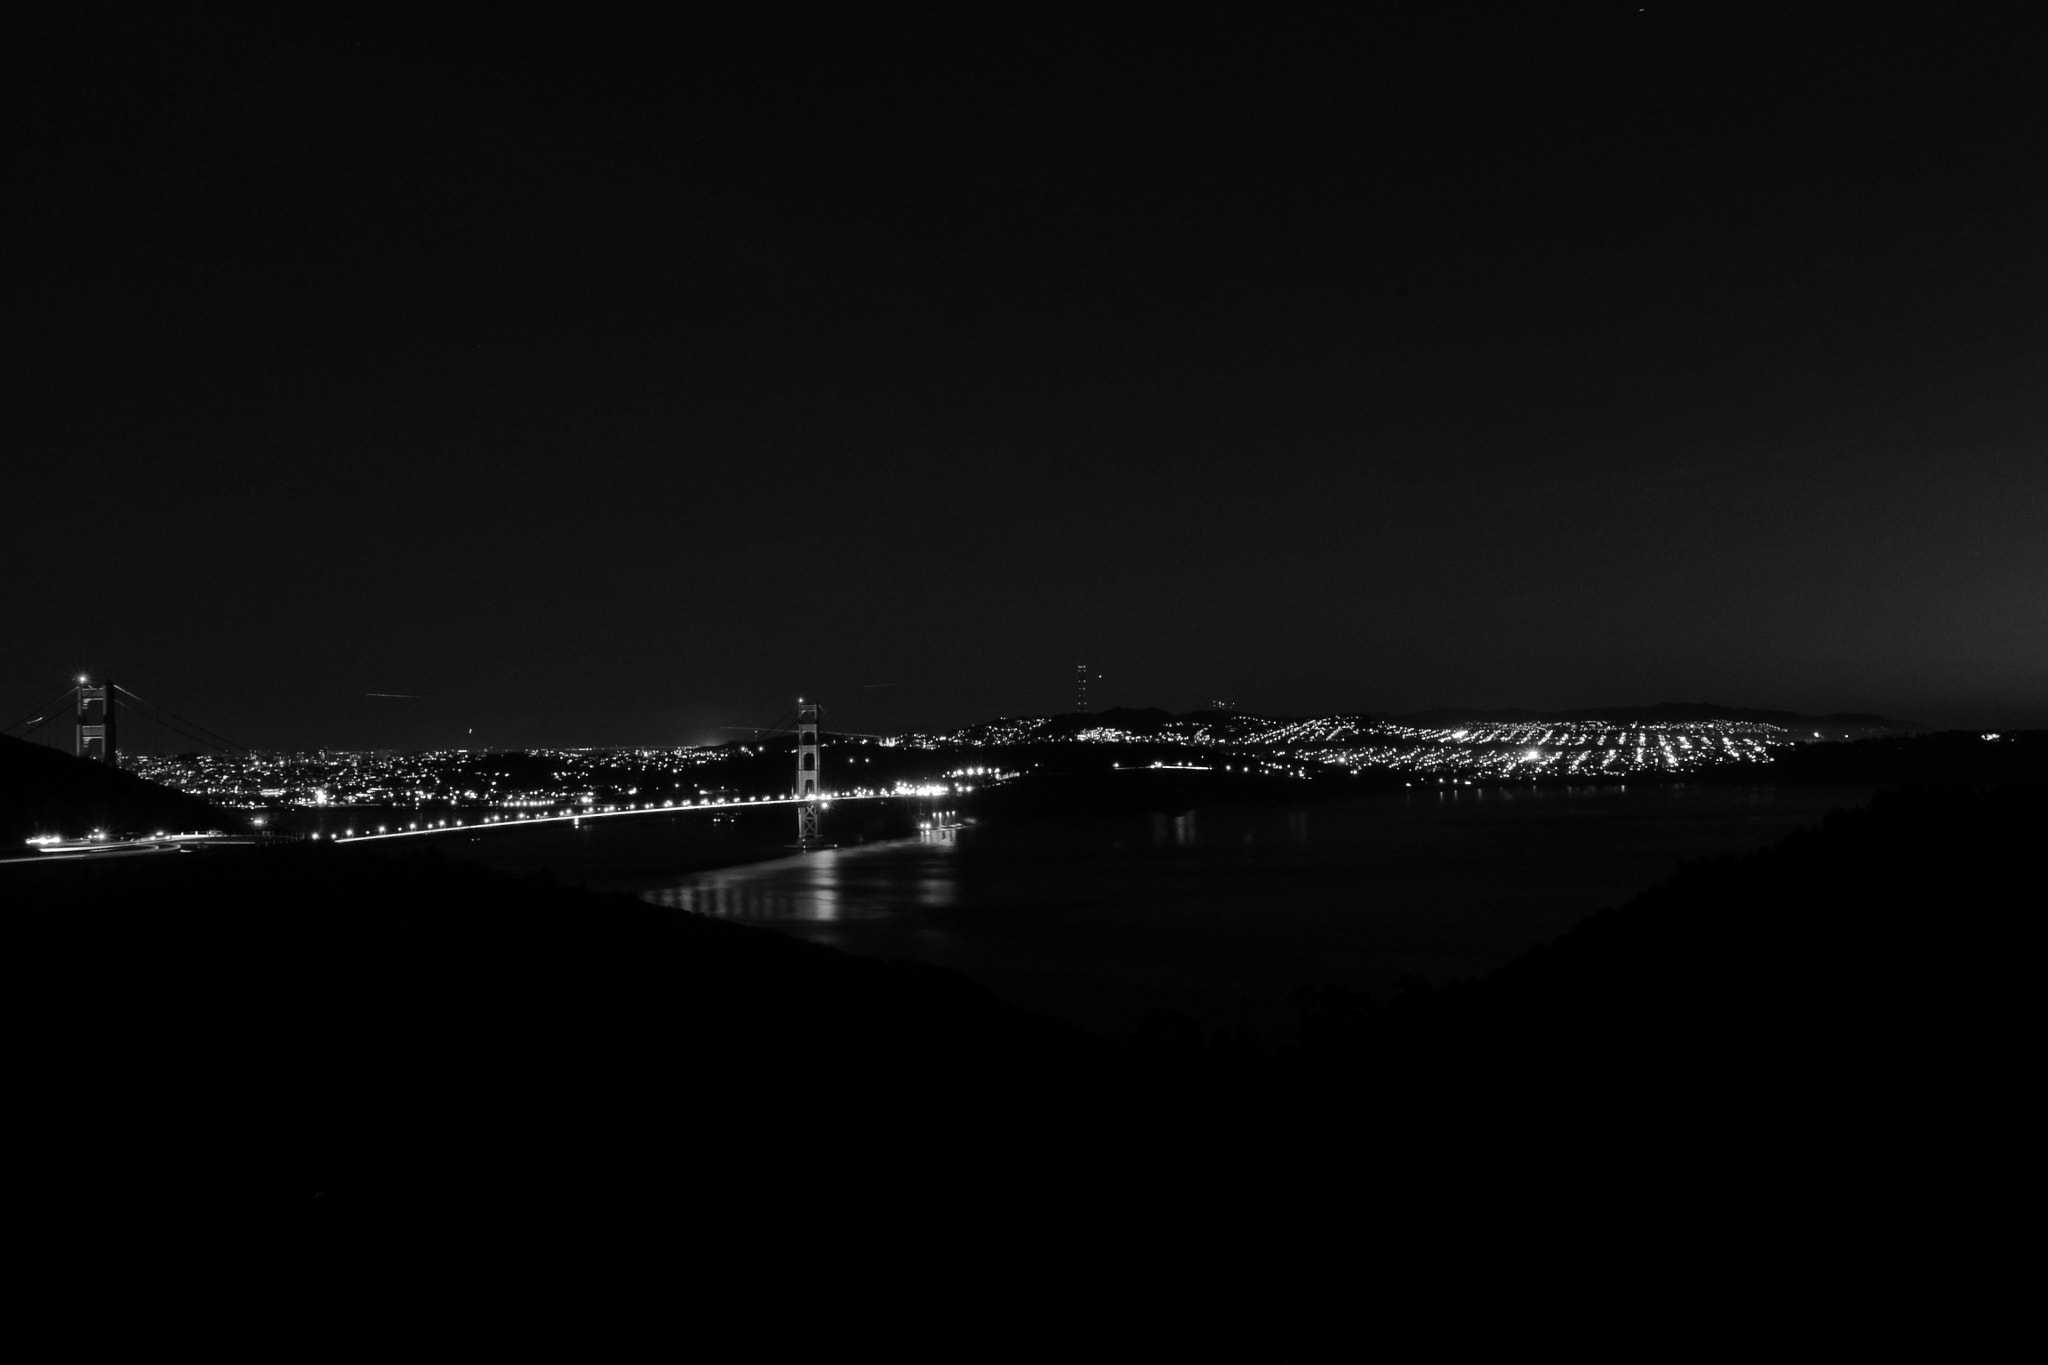 Photograph San Francisco from a distance by Meghneel Gore on 500px